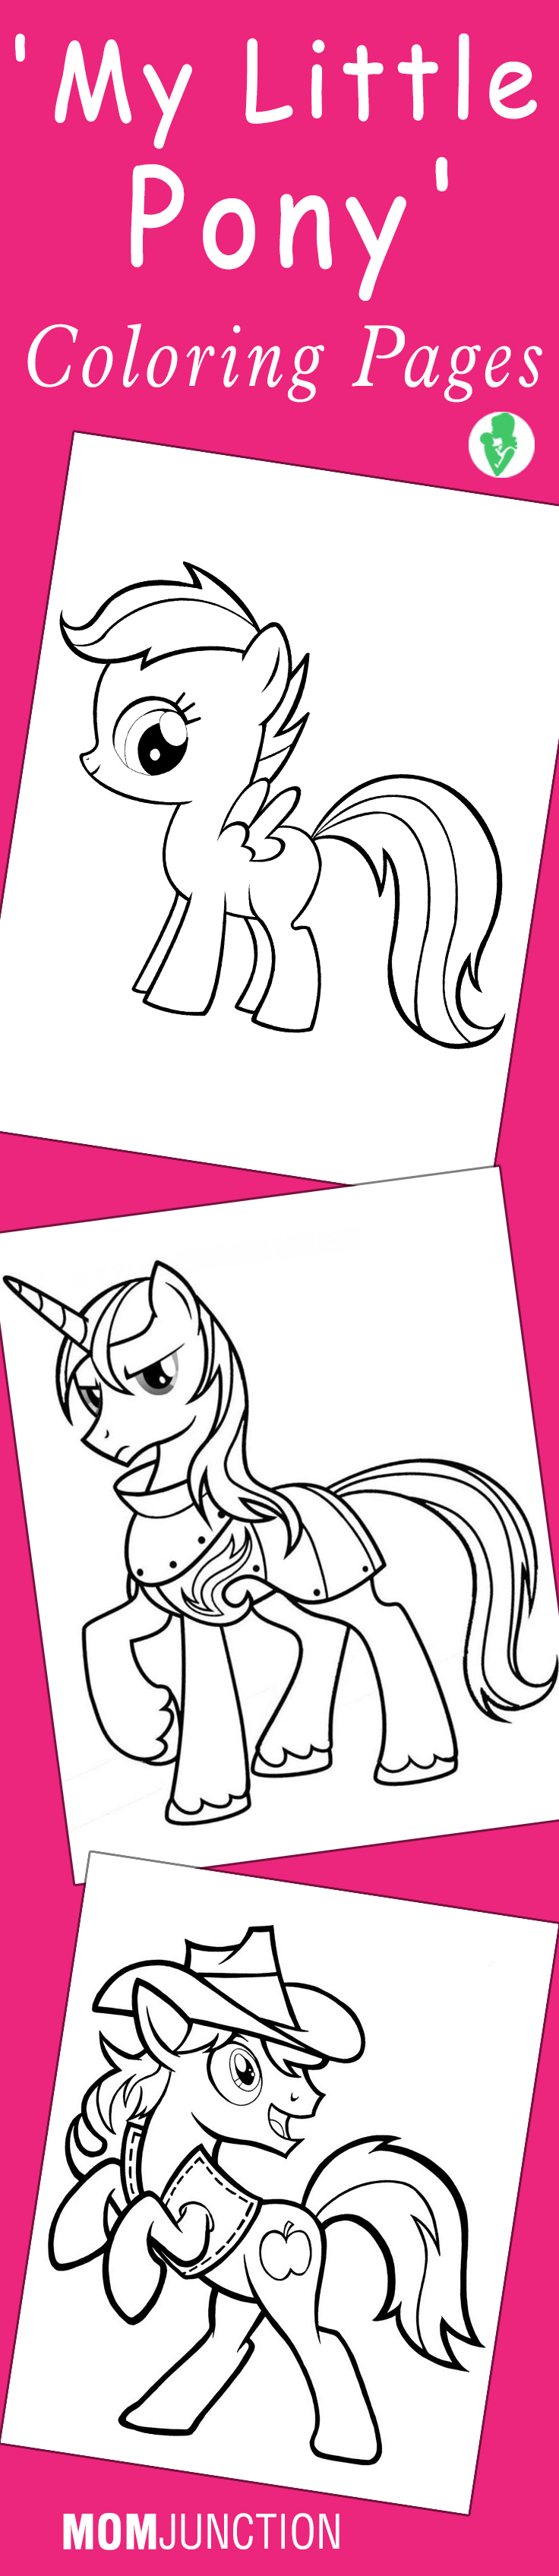 My little pony coloring pages bases - My Little Pony Coloring Pages Bases 82